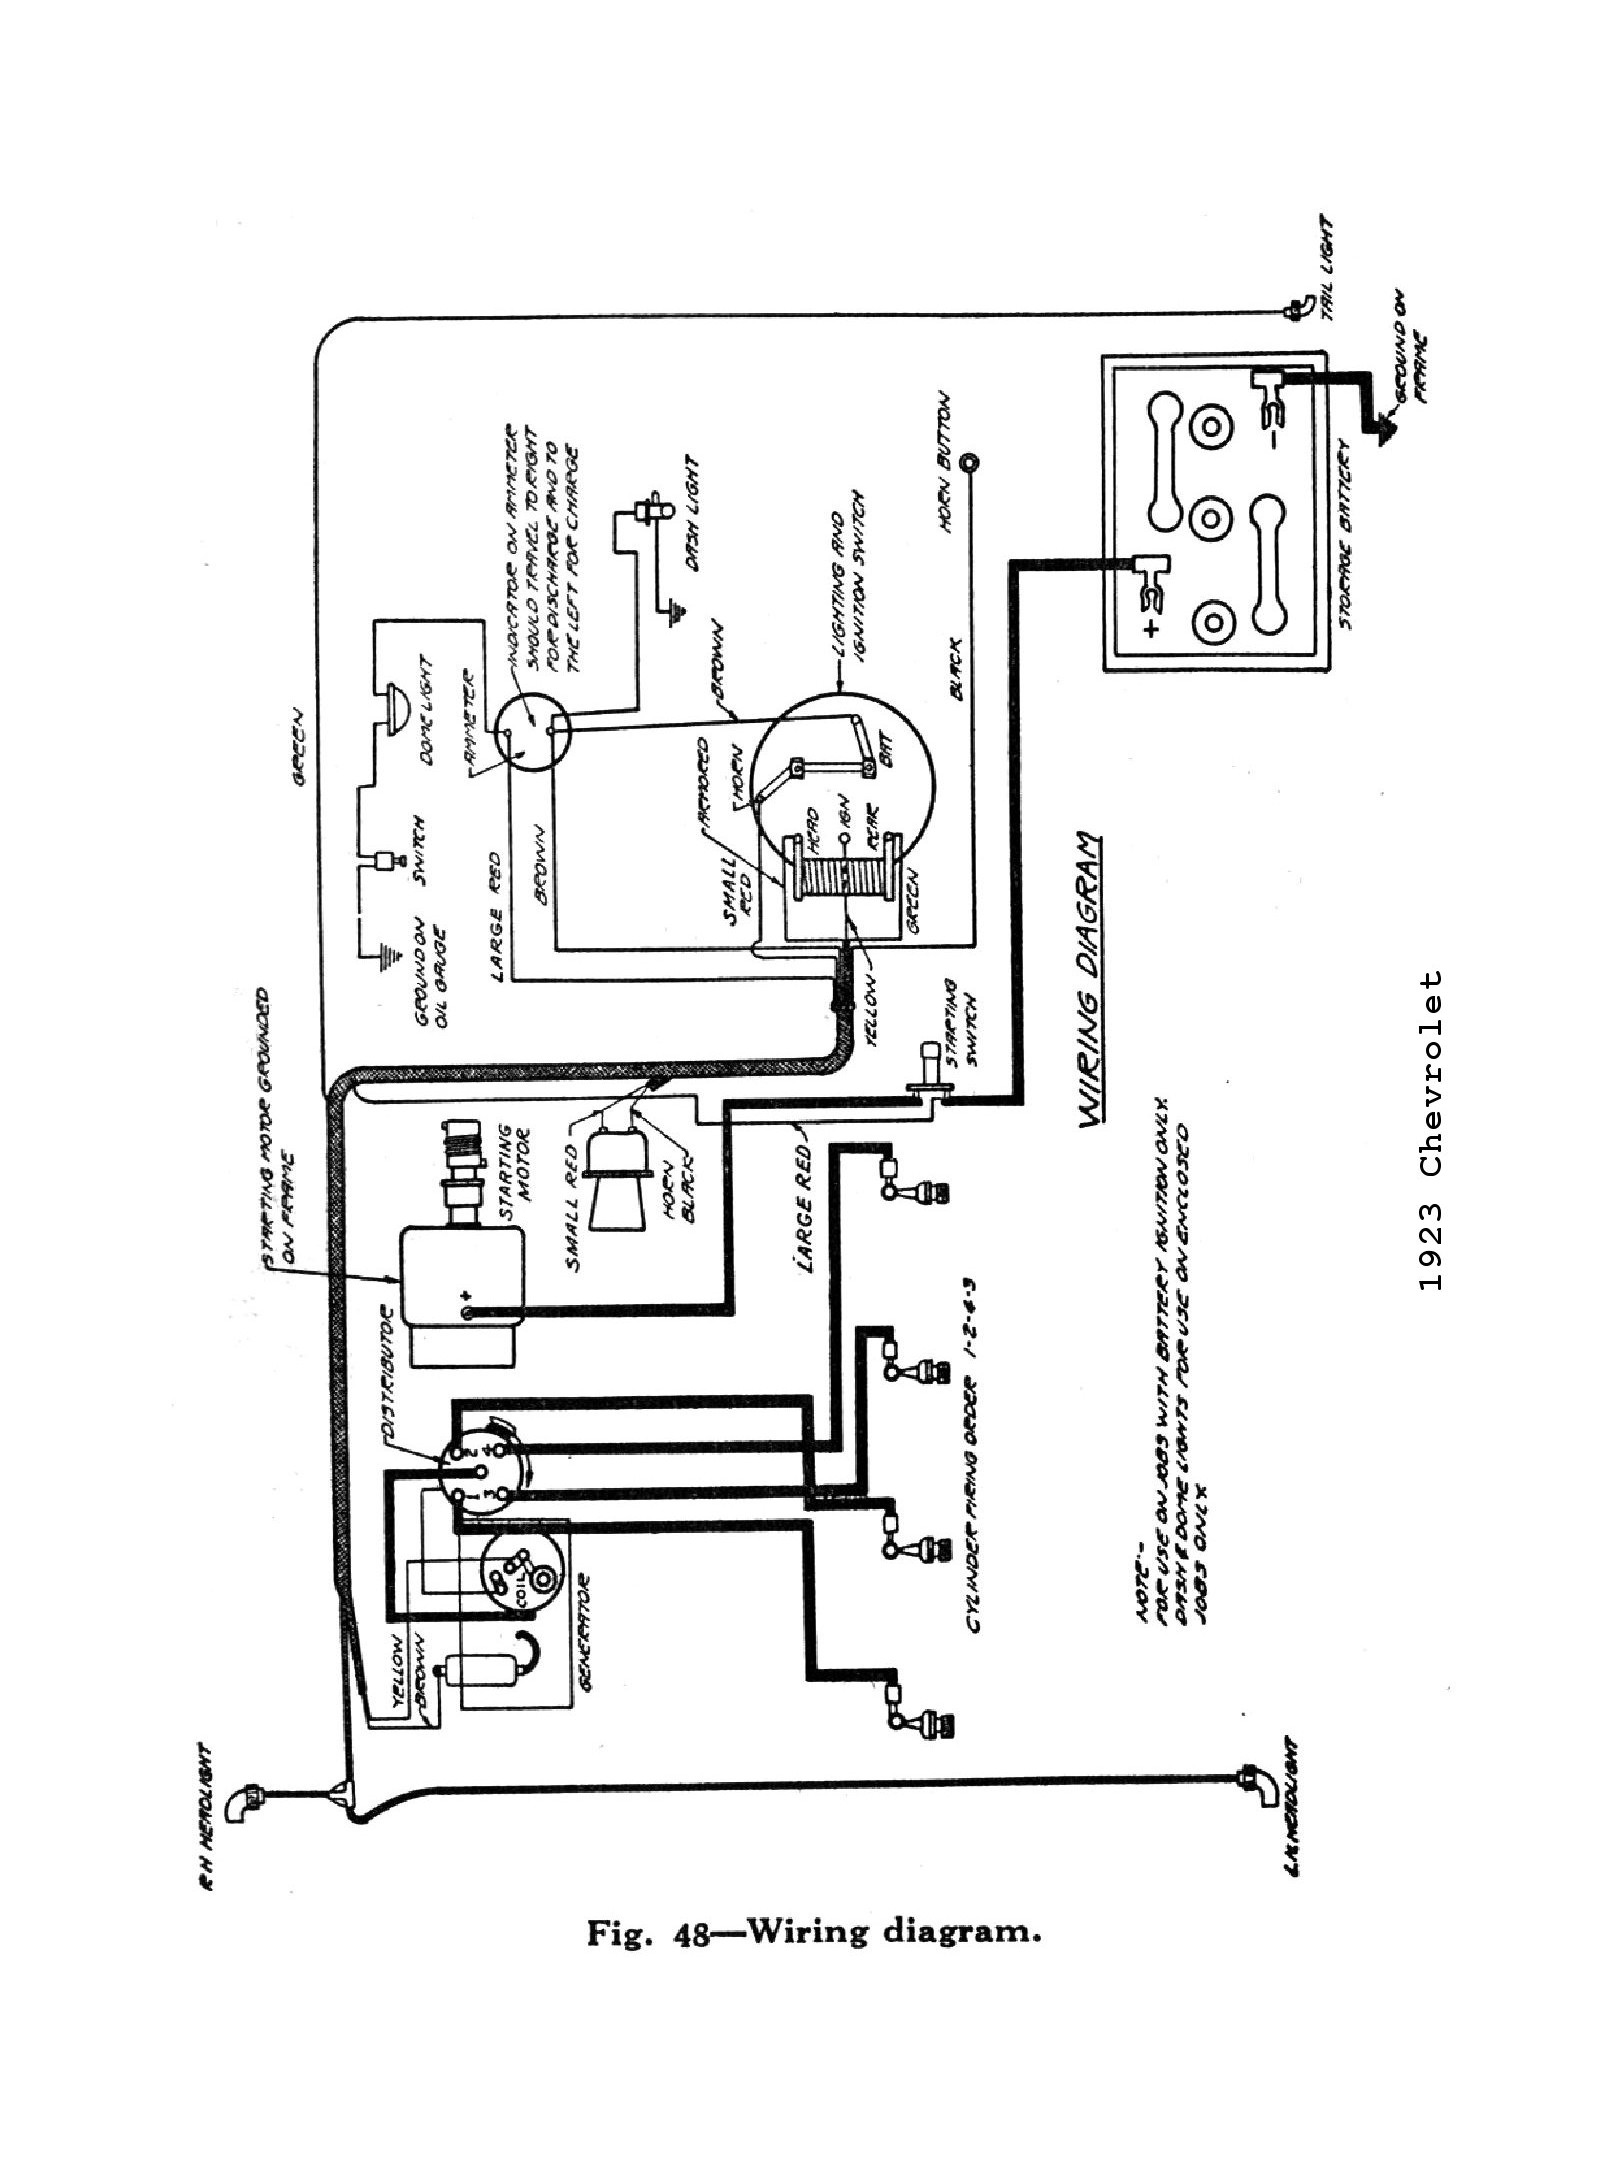 wiring diagram together with 1972 chevy c10 blower motor wiring